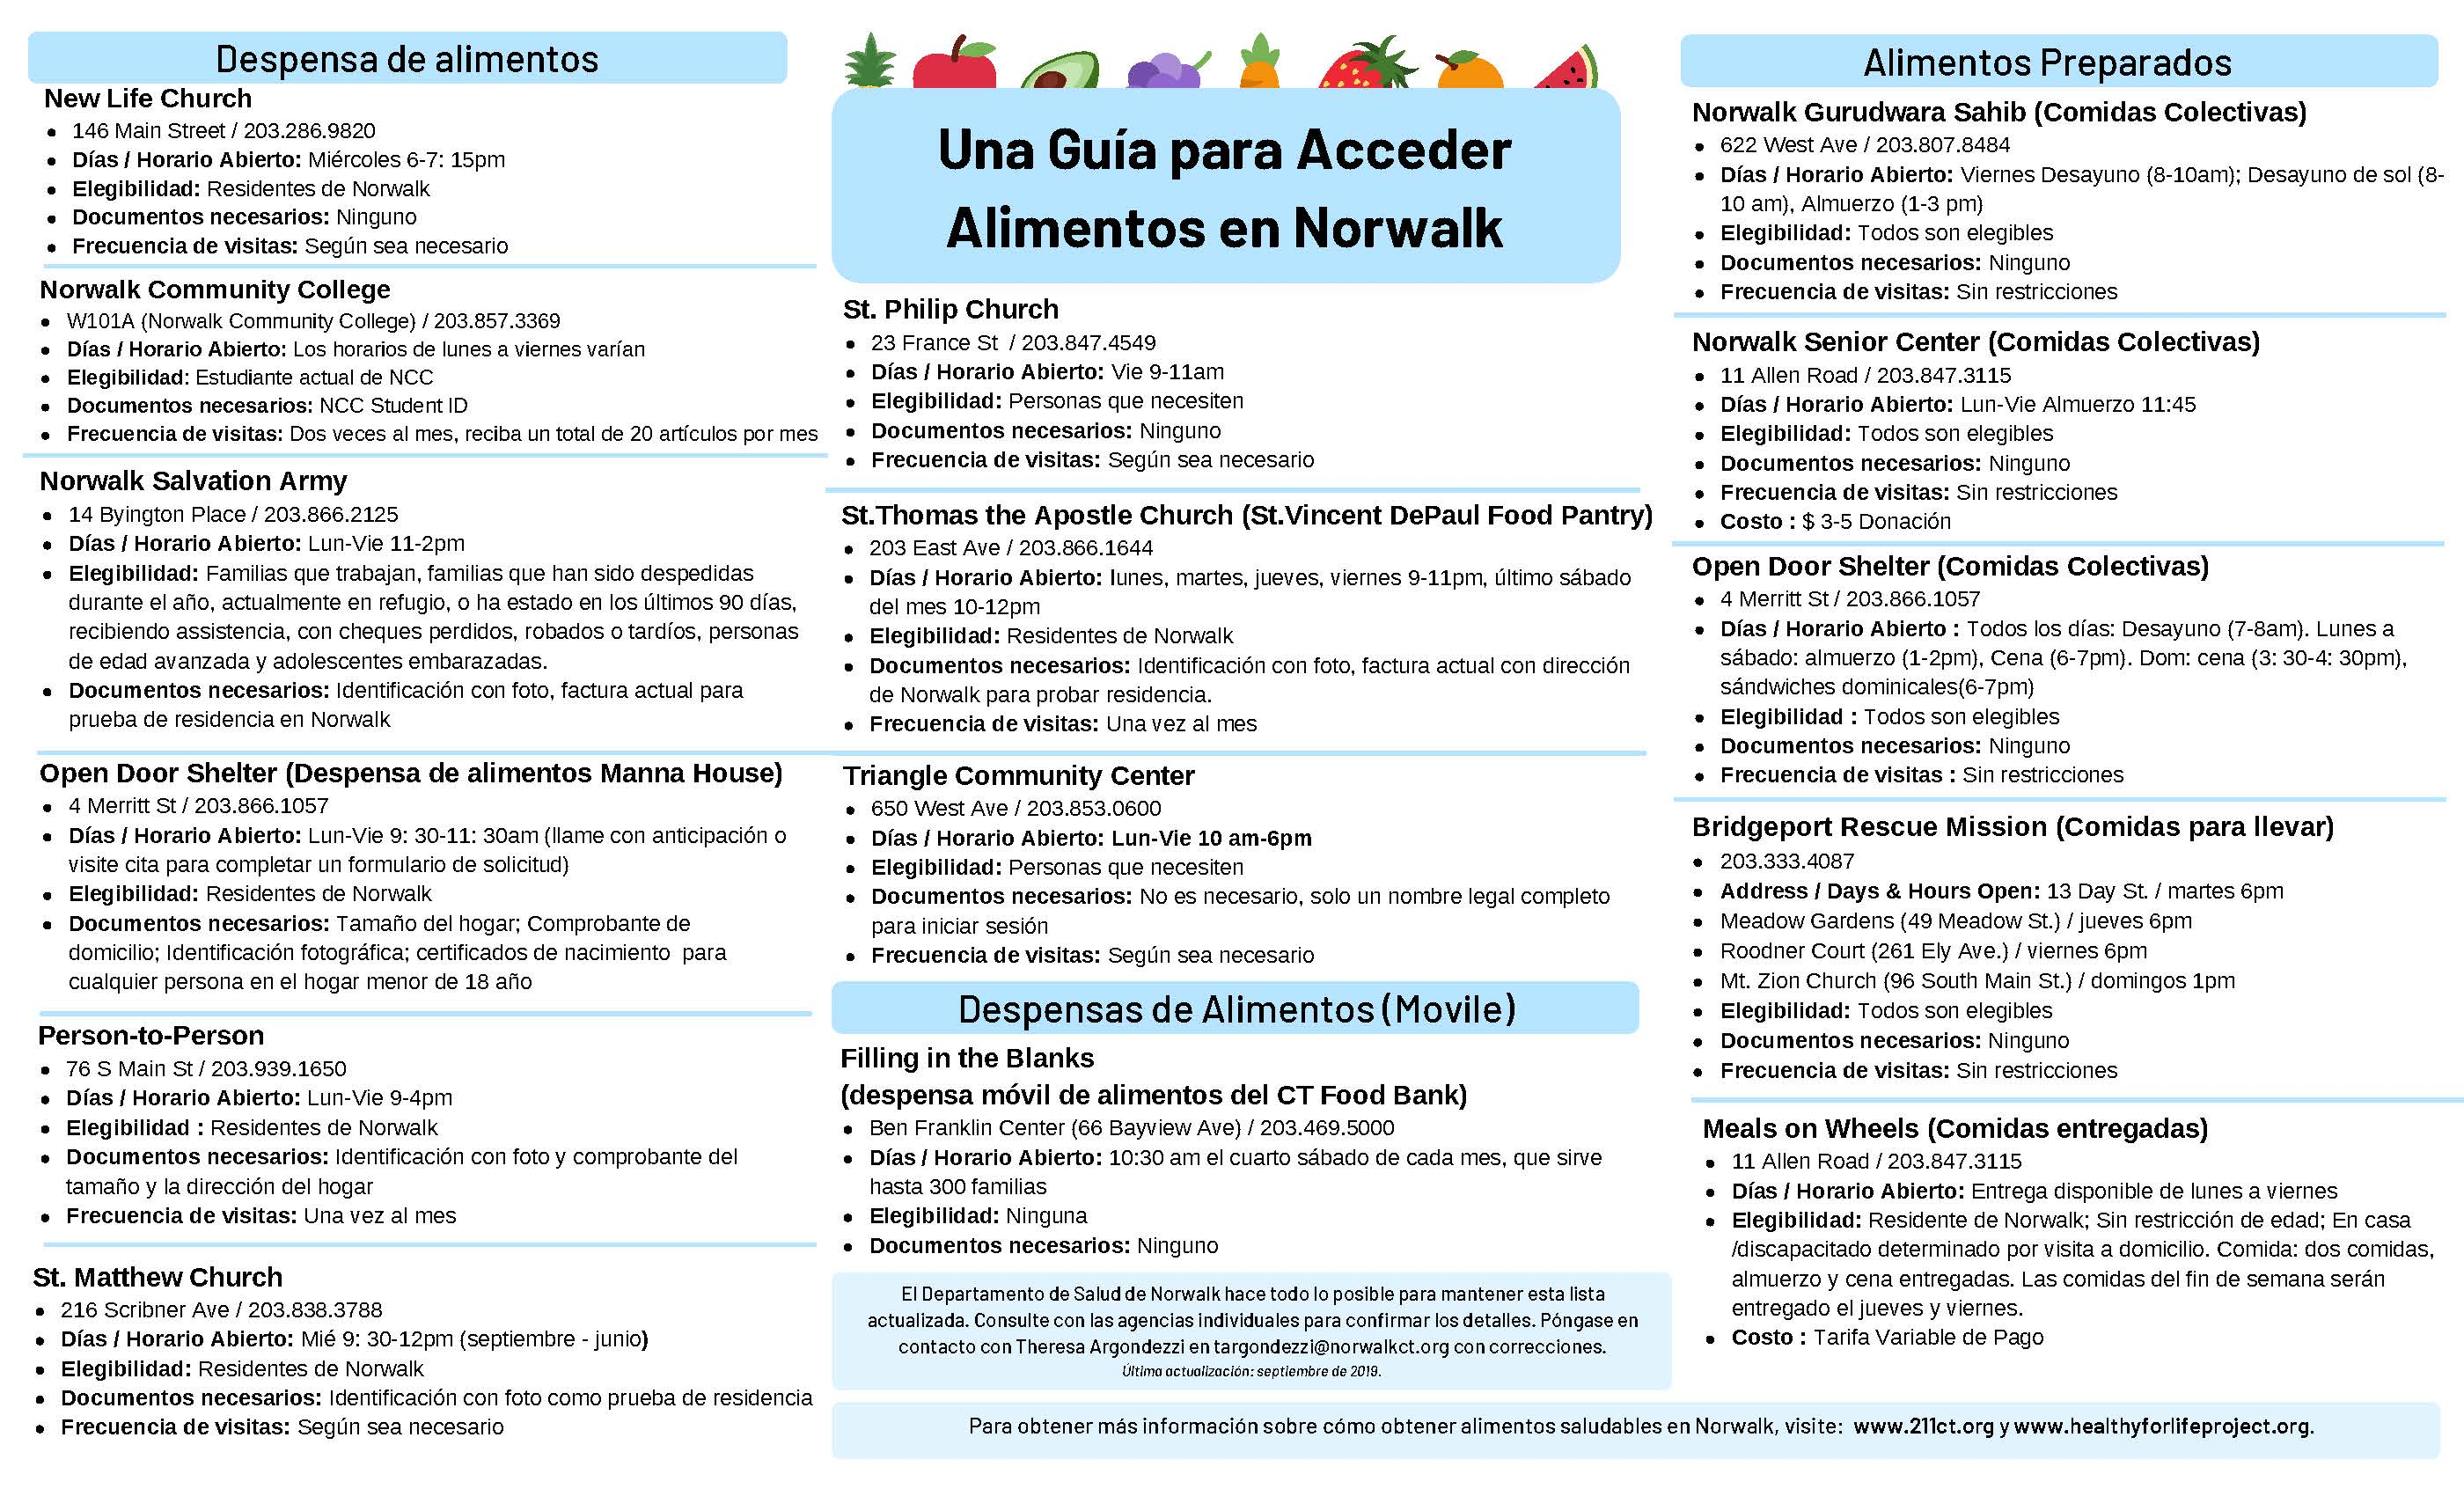 A Guide to Accessing Food in Norwalk_Spanish_Sept 2019